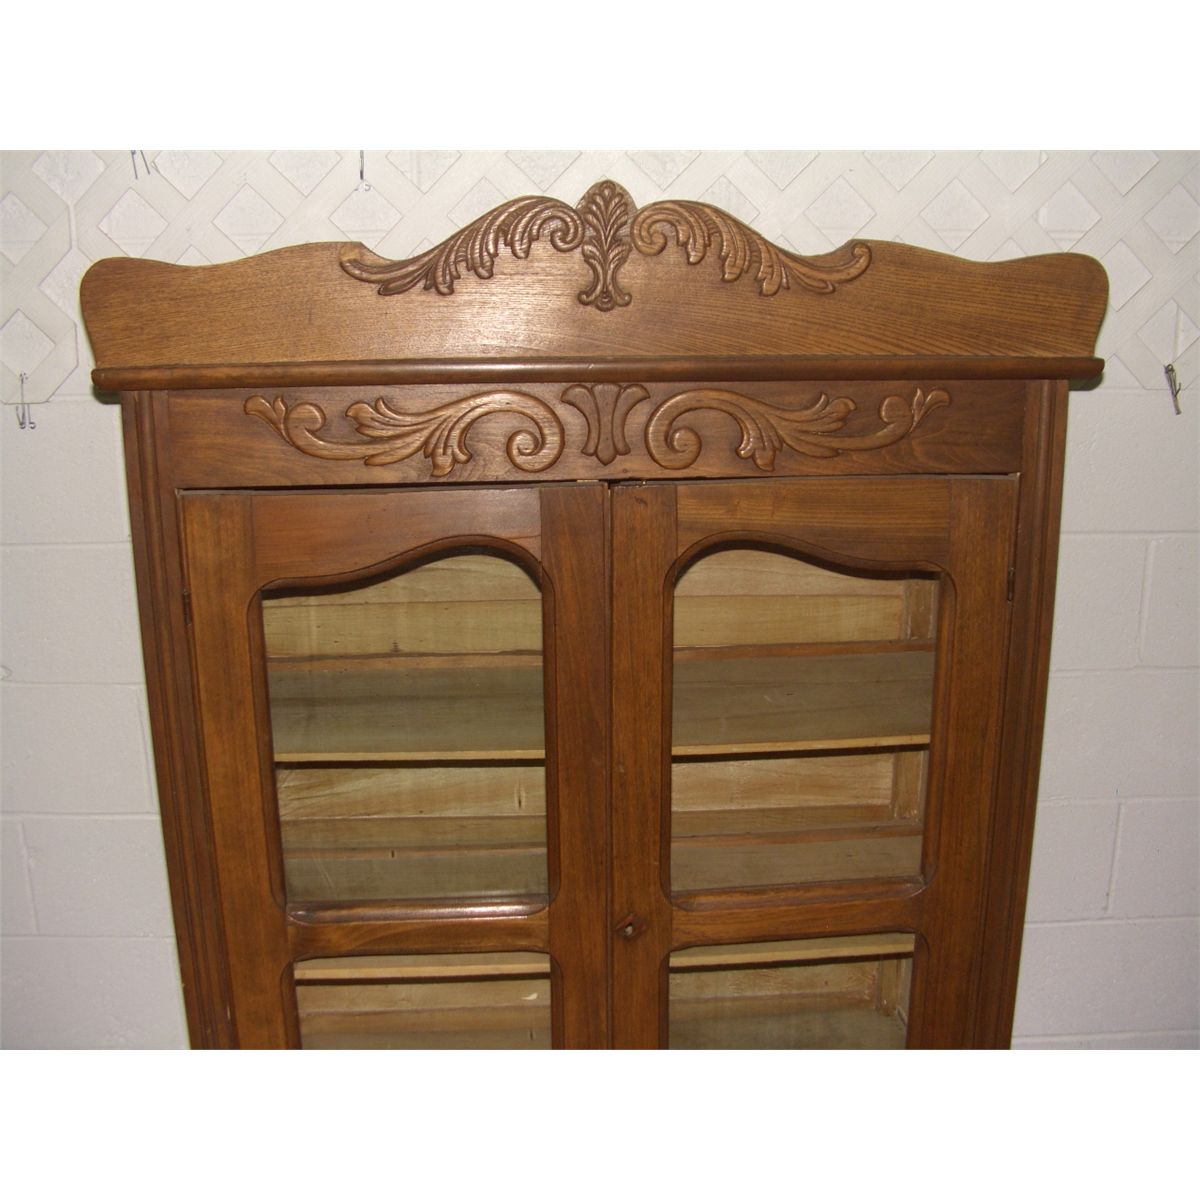 Kitchen Cabinet Auctions Nice Antique Oak Kitchen Cabinet With Applied Carving Ssr